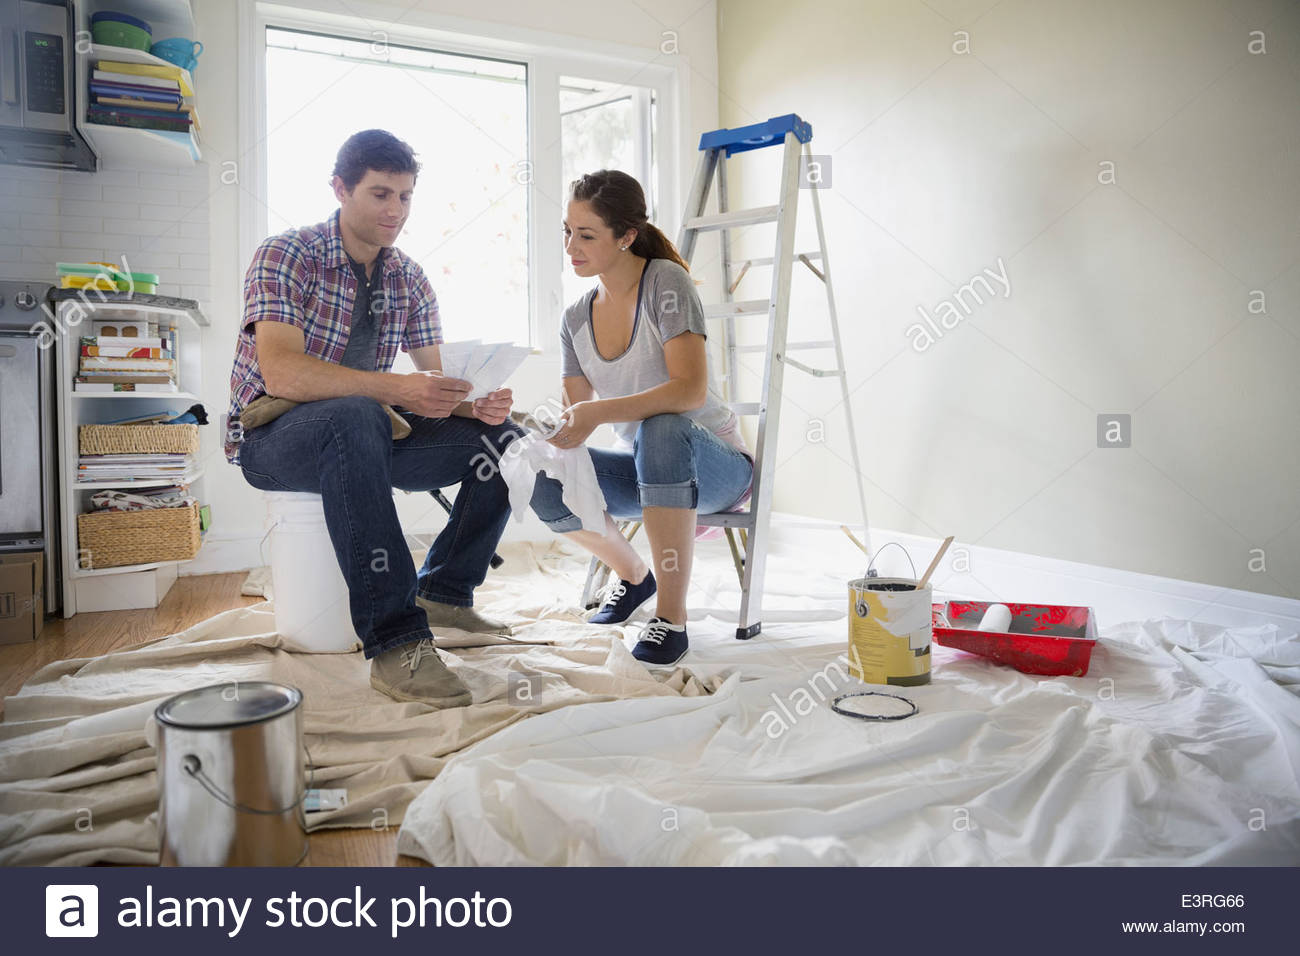 Couple with paint swatches starting painting project - Stock Image